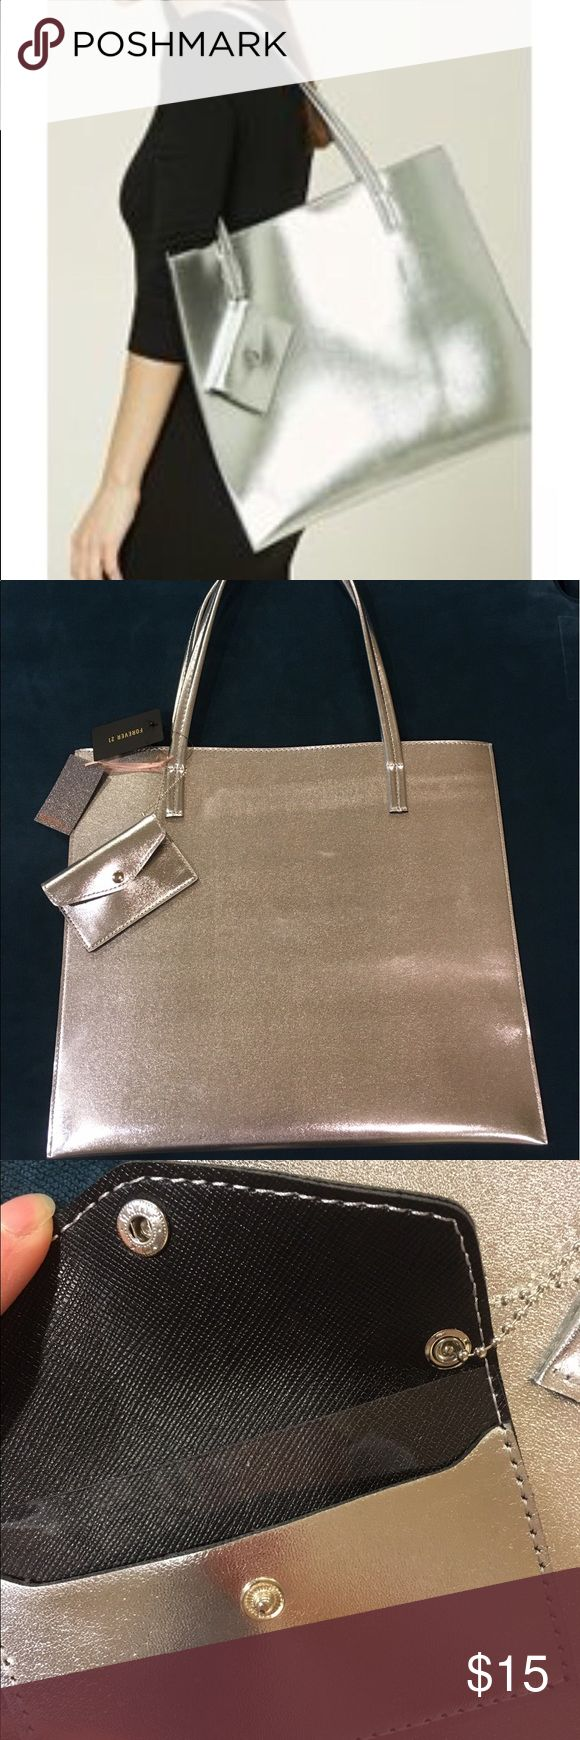 Forever 21 metallic silver tote bag+ coin pouch Look chic with this statement metallic silver tote bag by forever 21! Perfect for a day out to hold a lot of stuff! Comes with a cute coin pouch that has a divider, can hold a few cards! Tote measures: 15.5x13.75 inches ✅Bundles!✅❌no trades❌ Forever 21 Bags Totes